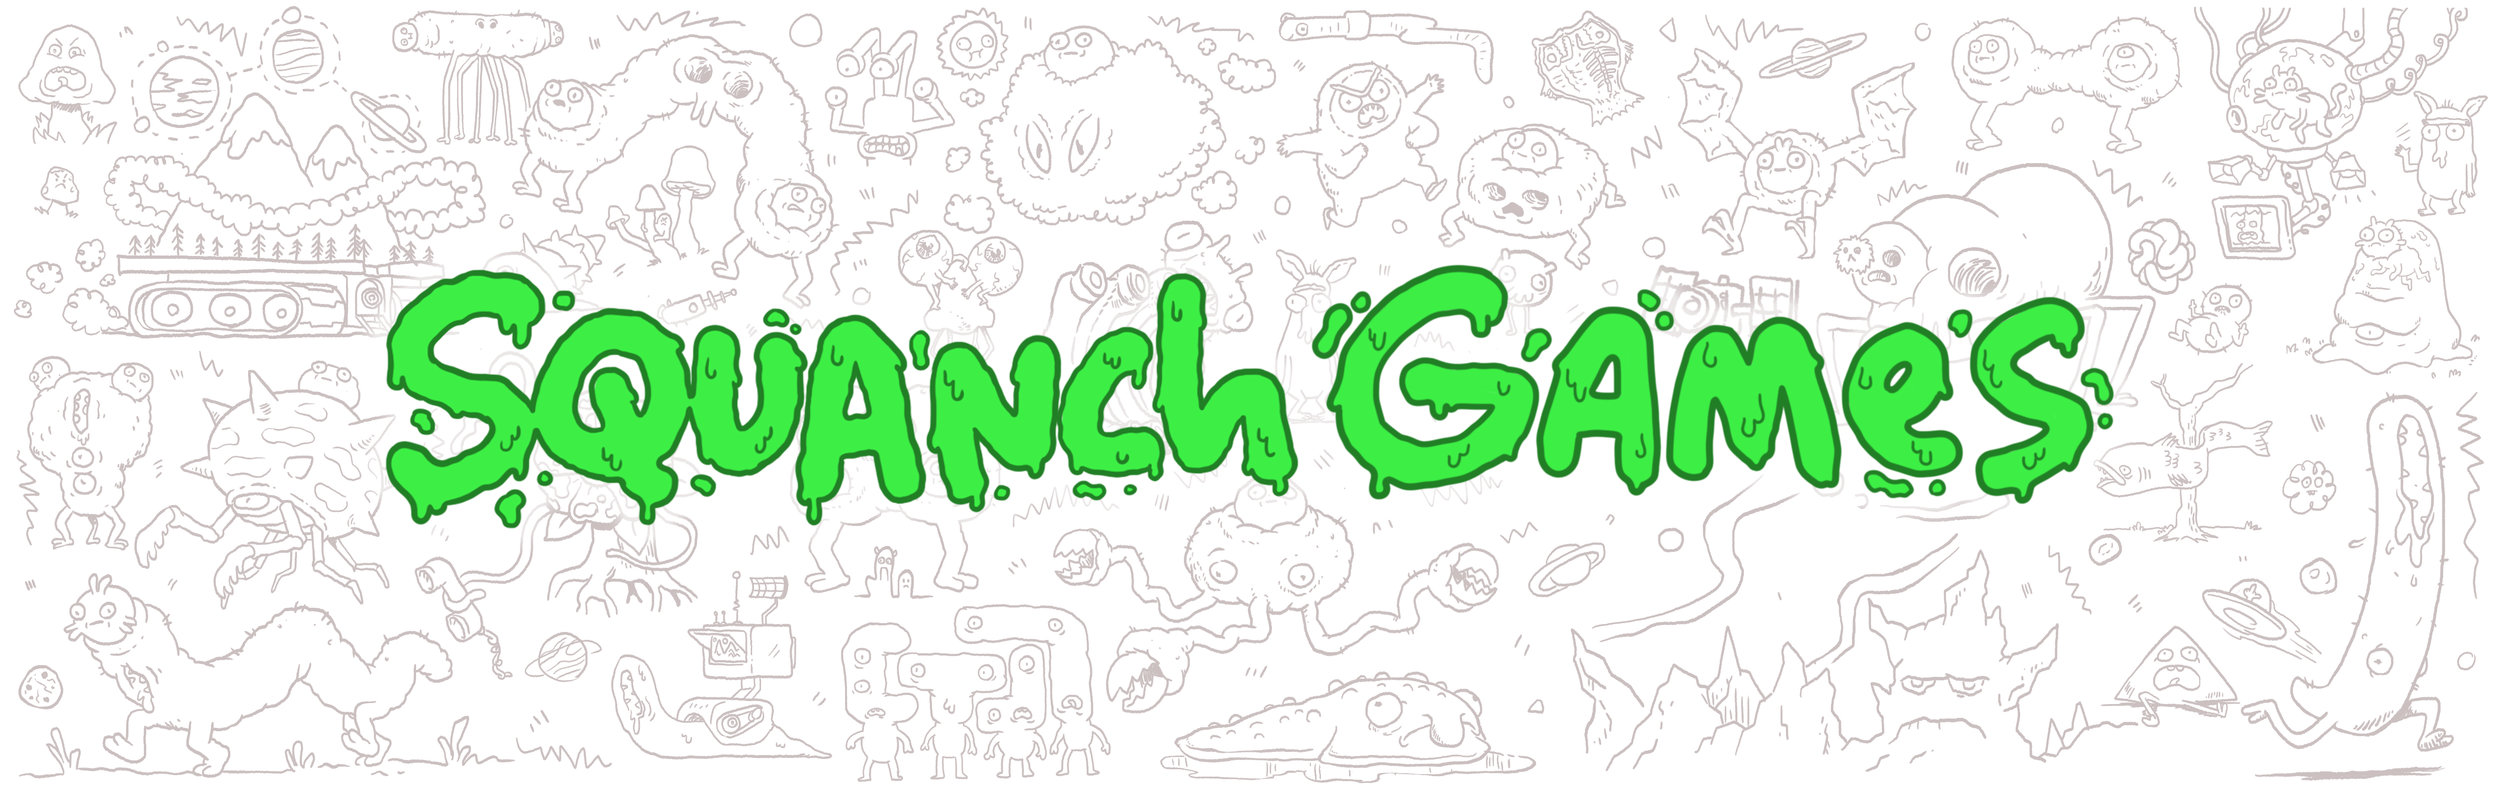 Squanch Blog — Squanch Games